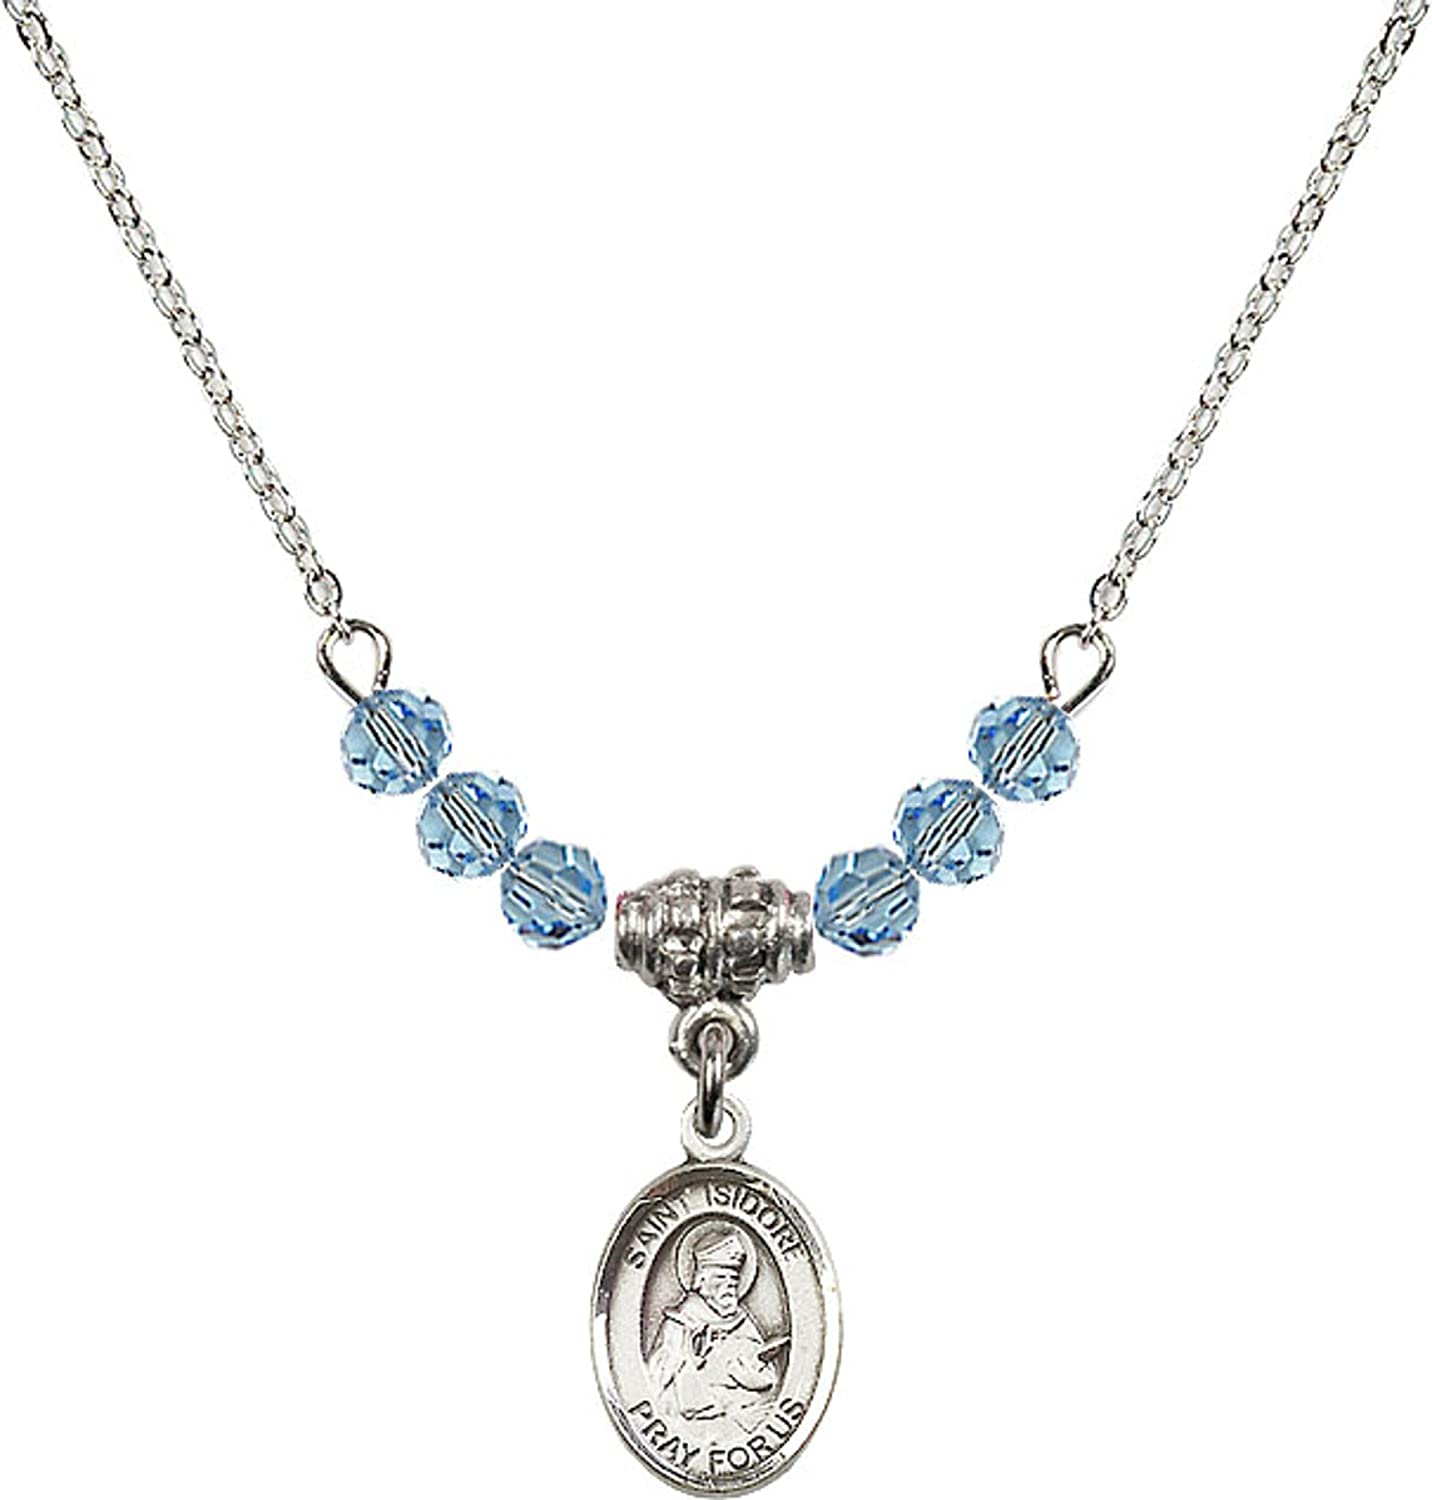 Bonyak Jewelry 18 Inch Rhodium Plated Necklace w// 4mm Blue March Birth Month Stone Beads and Saint Isidore of Seville Charm